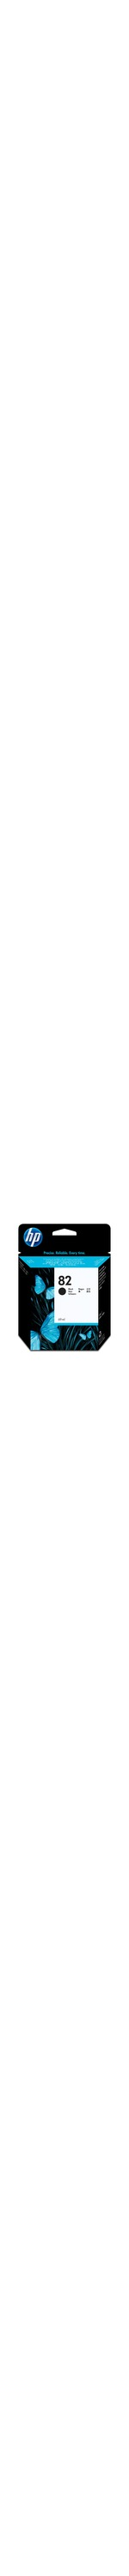 HP No.82 Ink Cartridge - Black